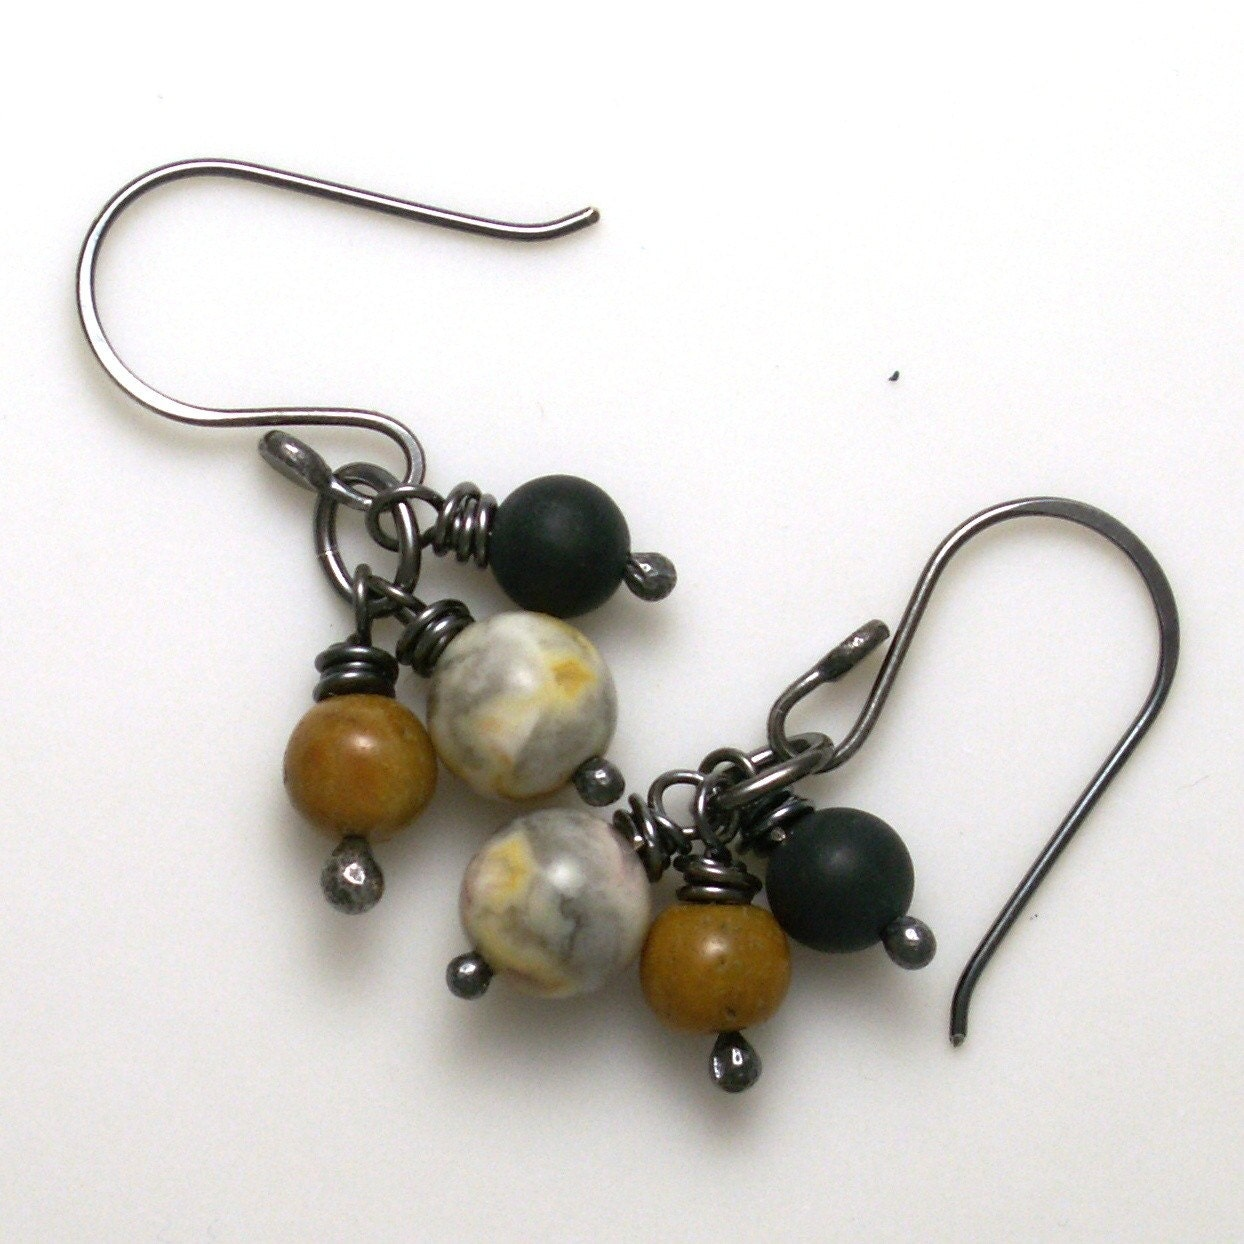 jewelry earrings earth tones black gray camel